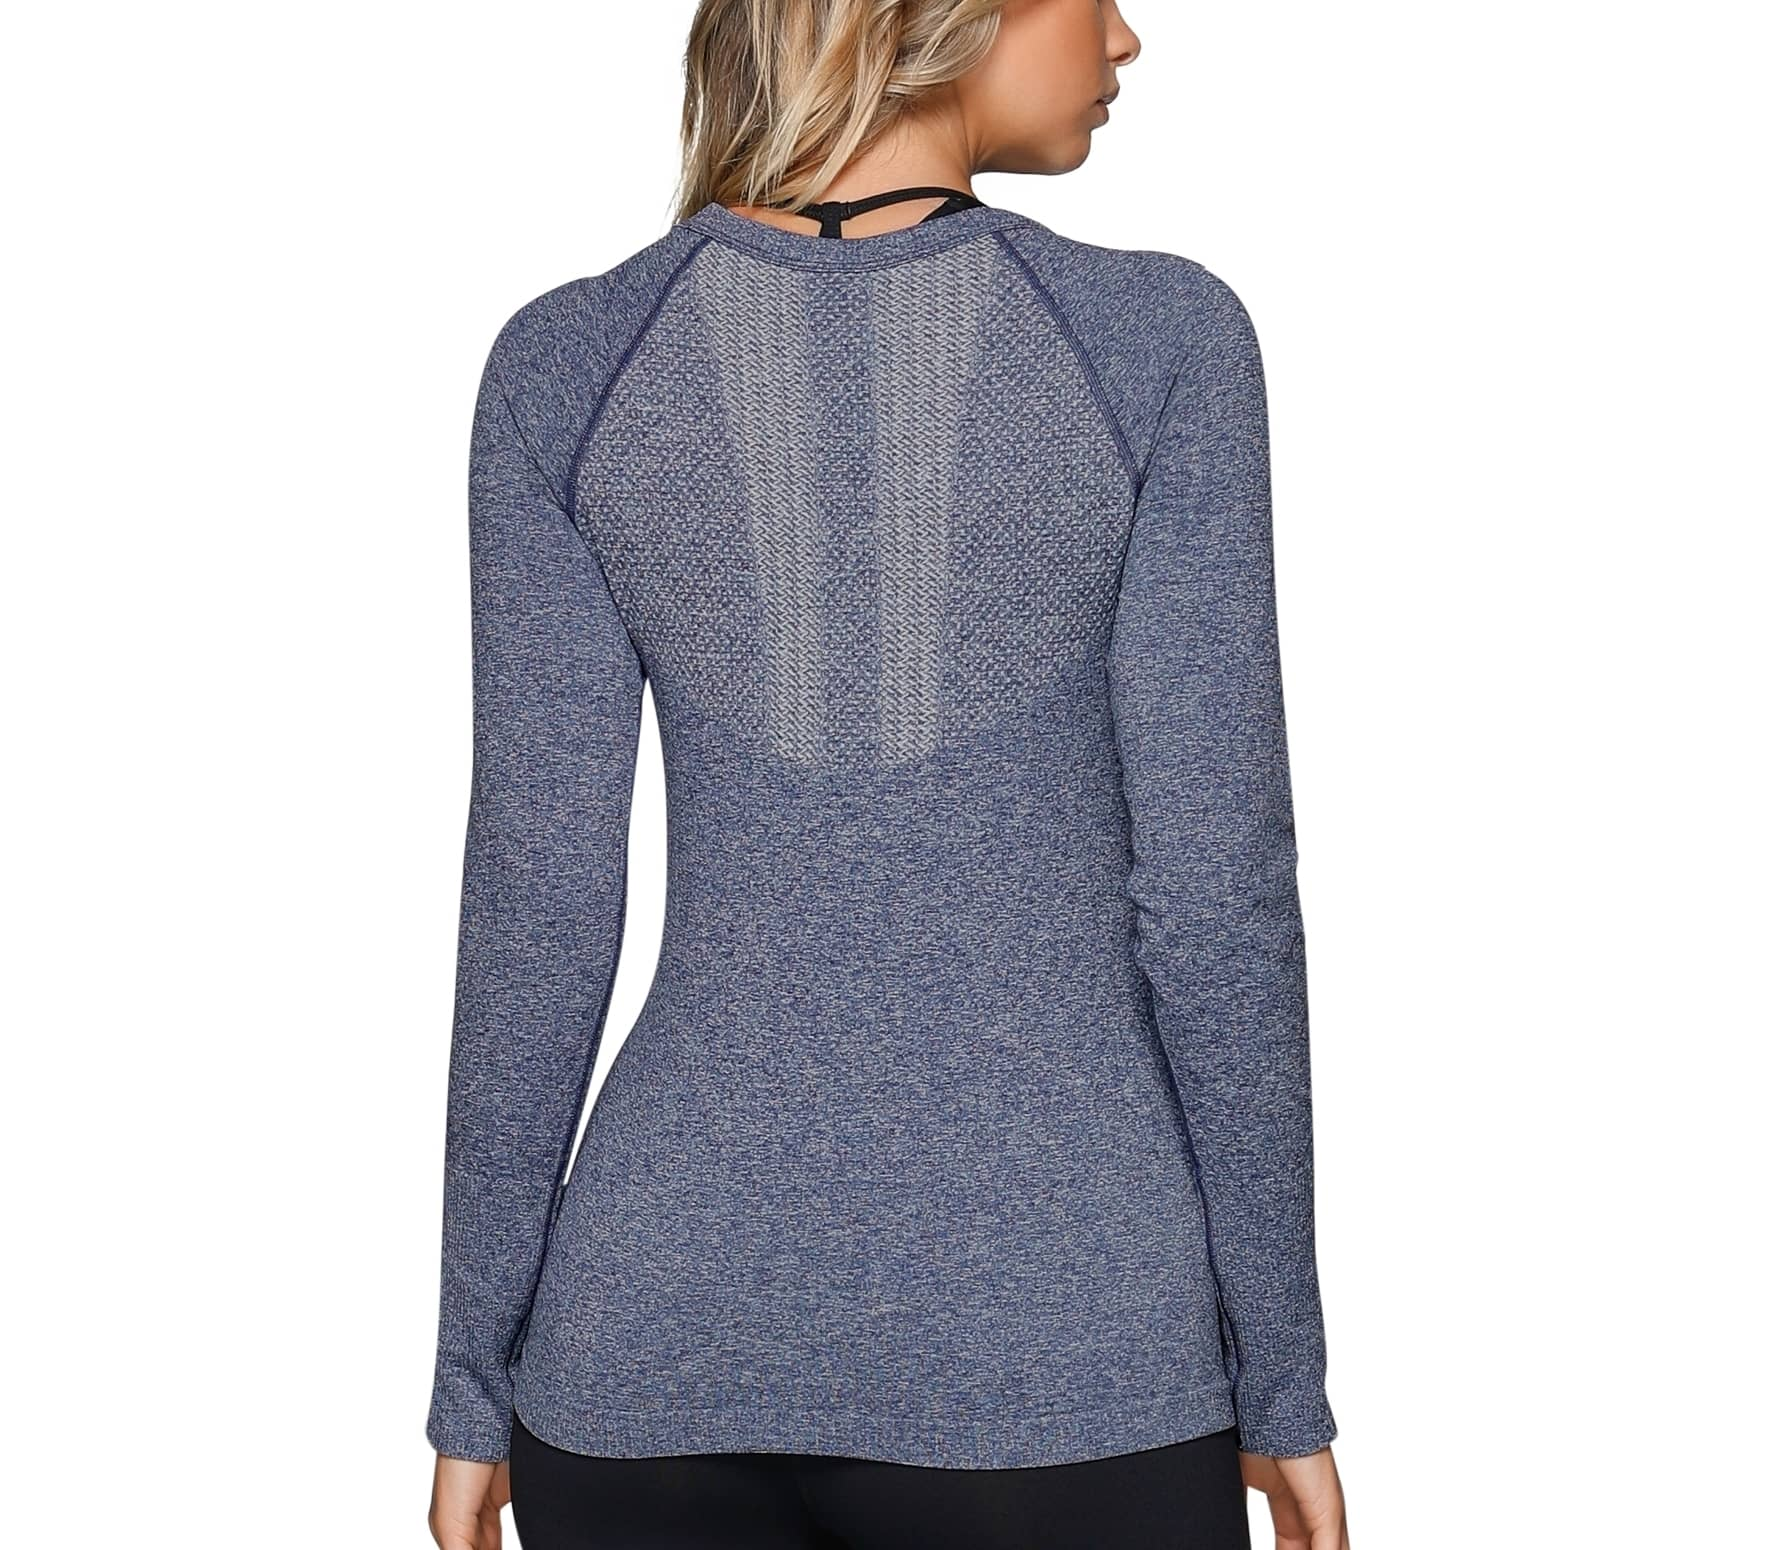 Lorna Jane - Charlie long-sleeved women's training top (grey)